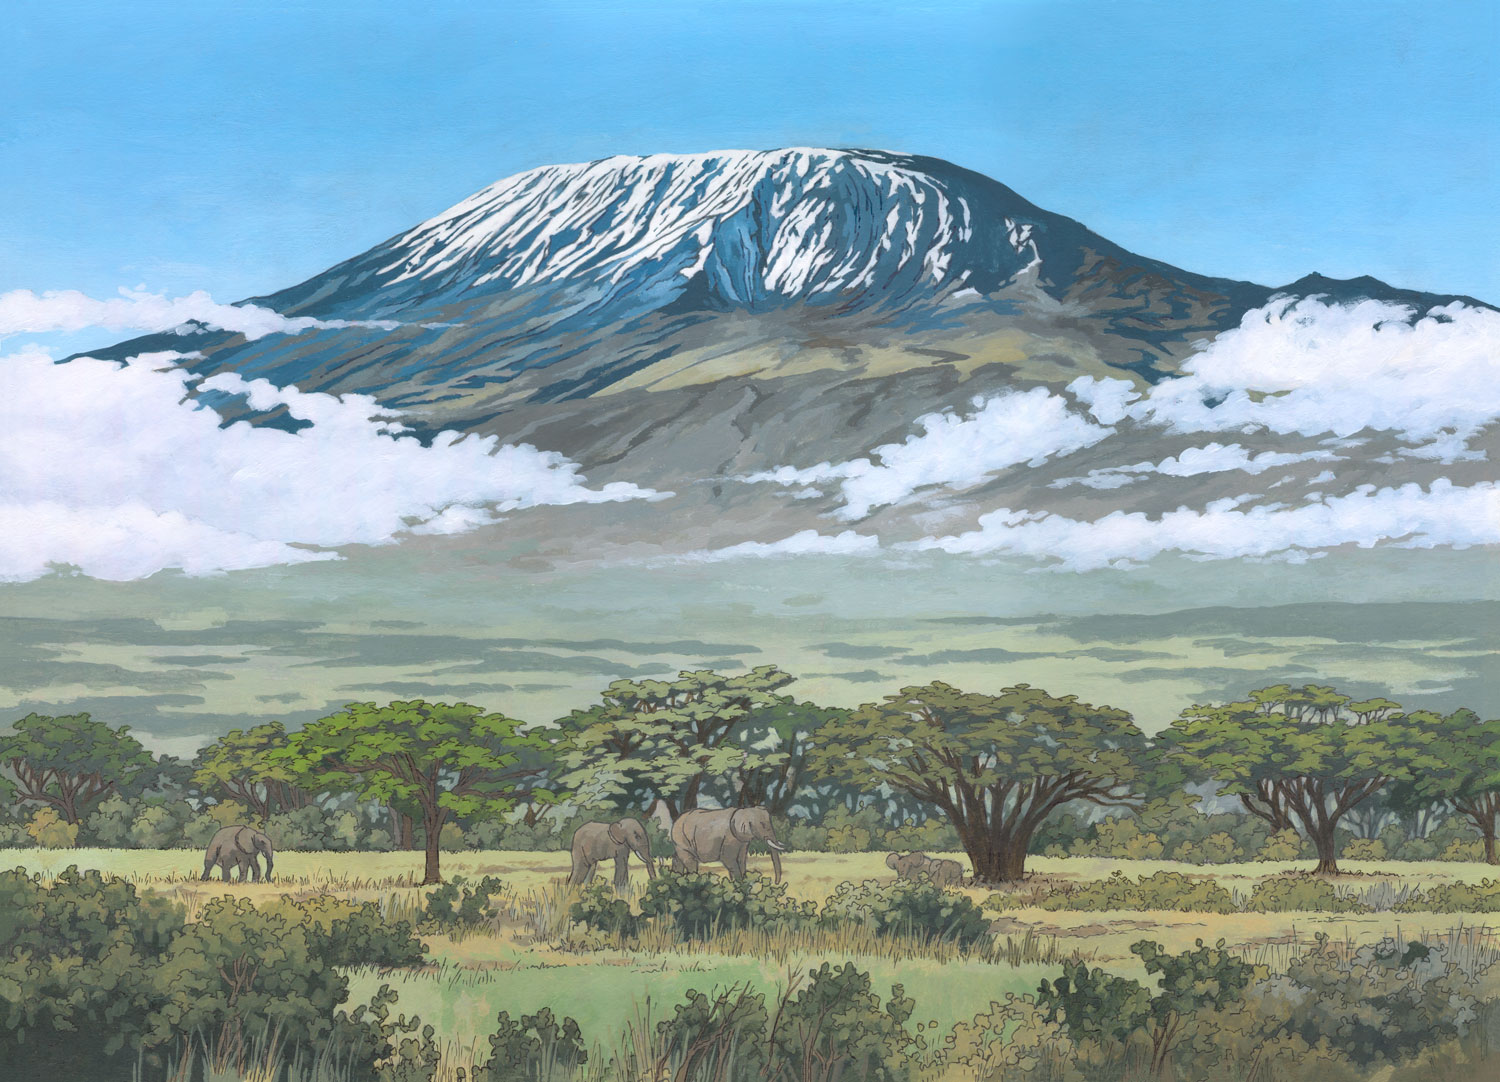 Kilimanjaro-Tanzania-Illustration-by-Jonathan-Chapman